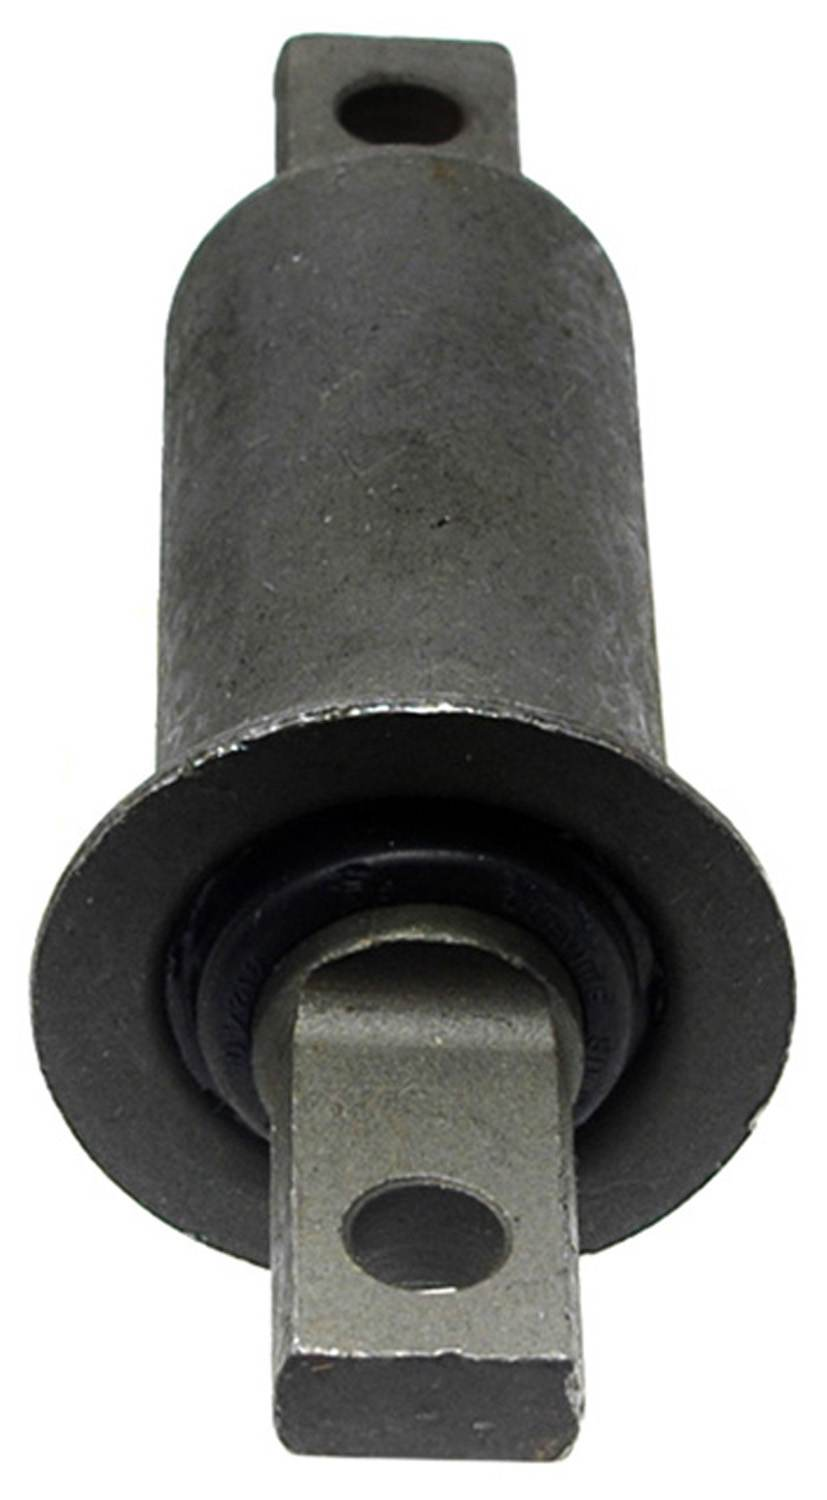 ACDELCO PROFESSIONAL - Coil Spring Seat - DCC 45G8029